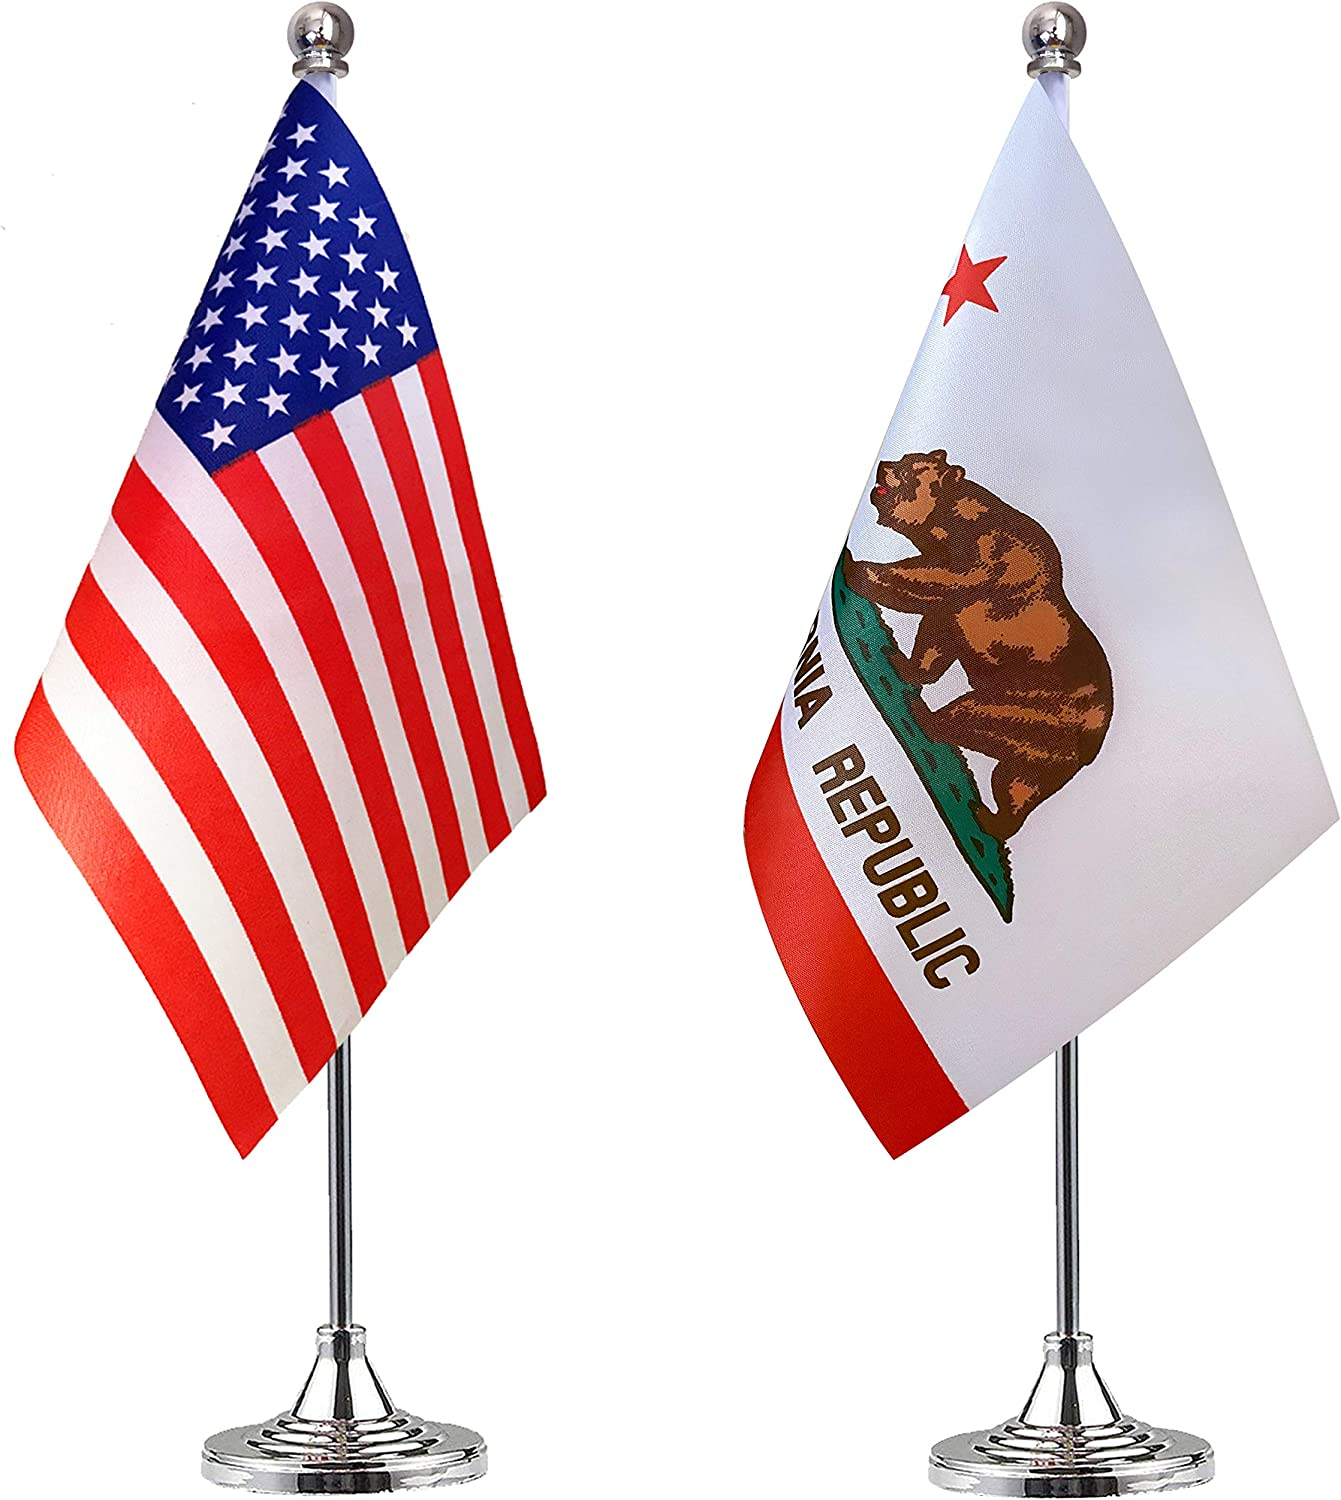 WEITBF California State Desk Flag Small Mini California CA Office Table Flag with Stand Base,2 Pack: Garden & Outdoor